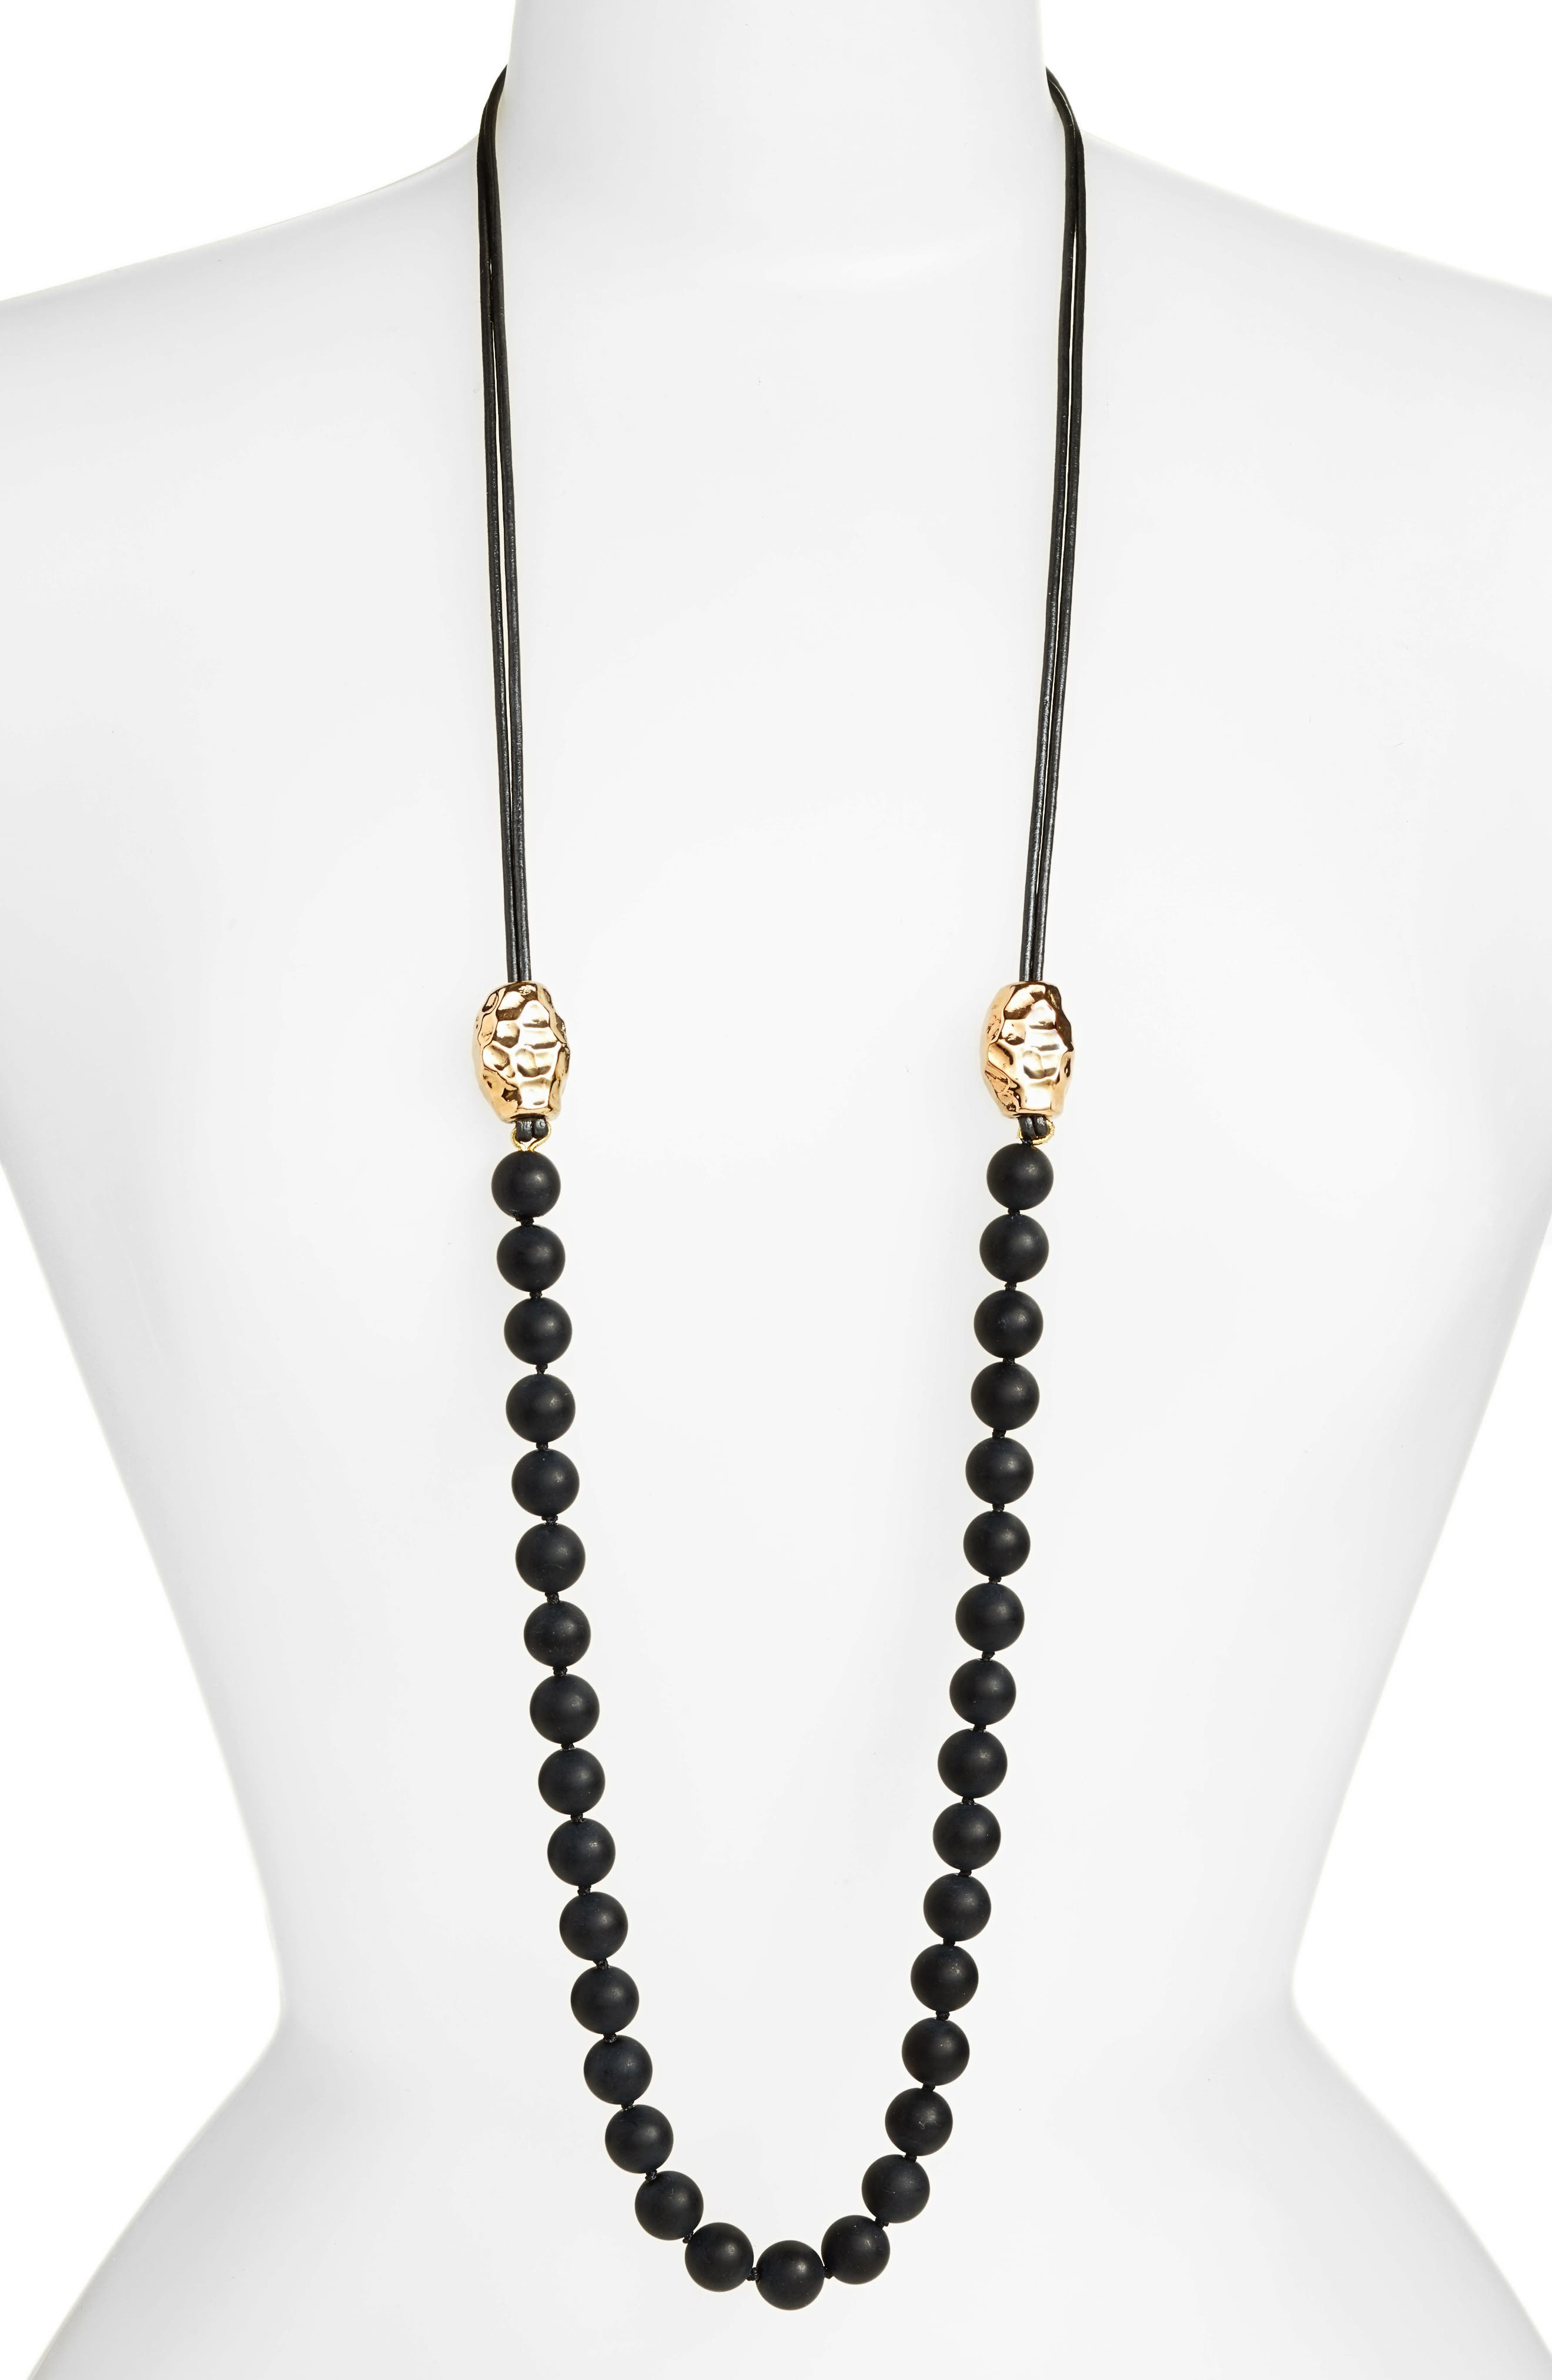 Vermeil Bead Matte Onyx Necklace,                         Main,                         color, Black/ Gold